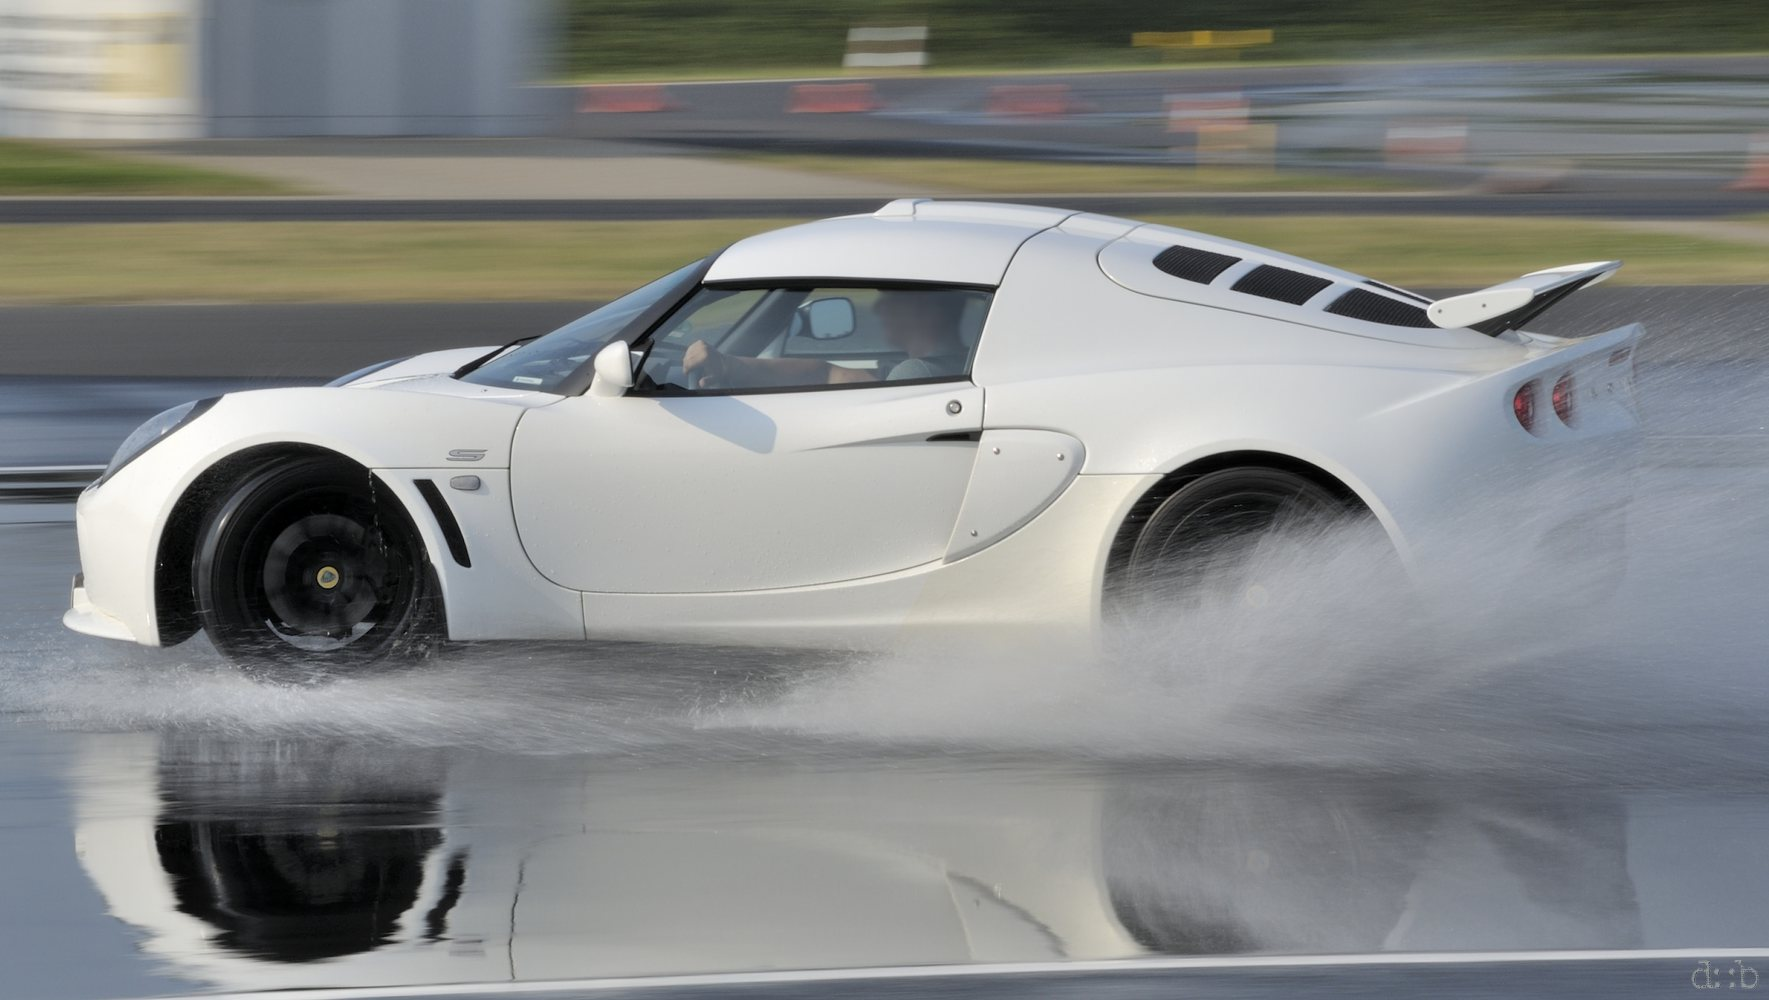 A white Lotus Exige is sliding through an artificial water puddle